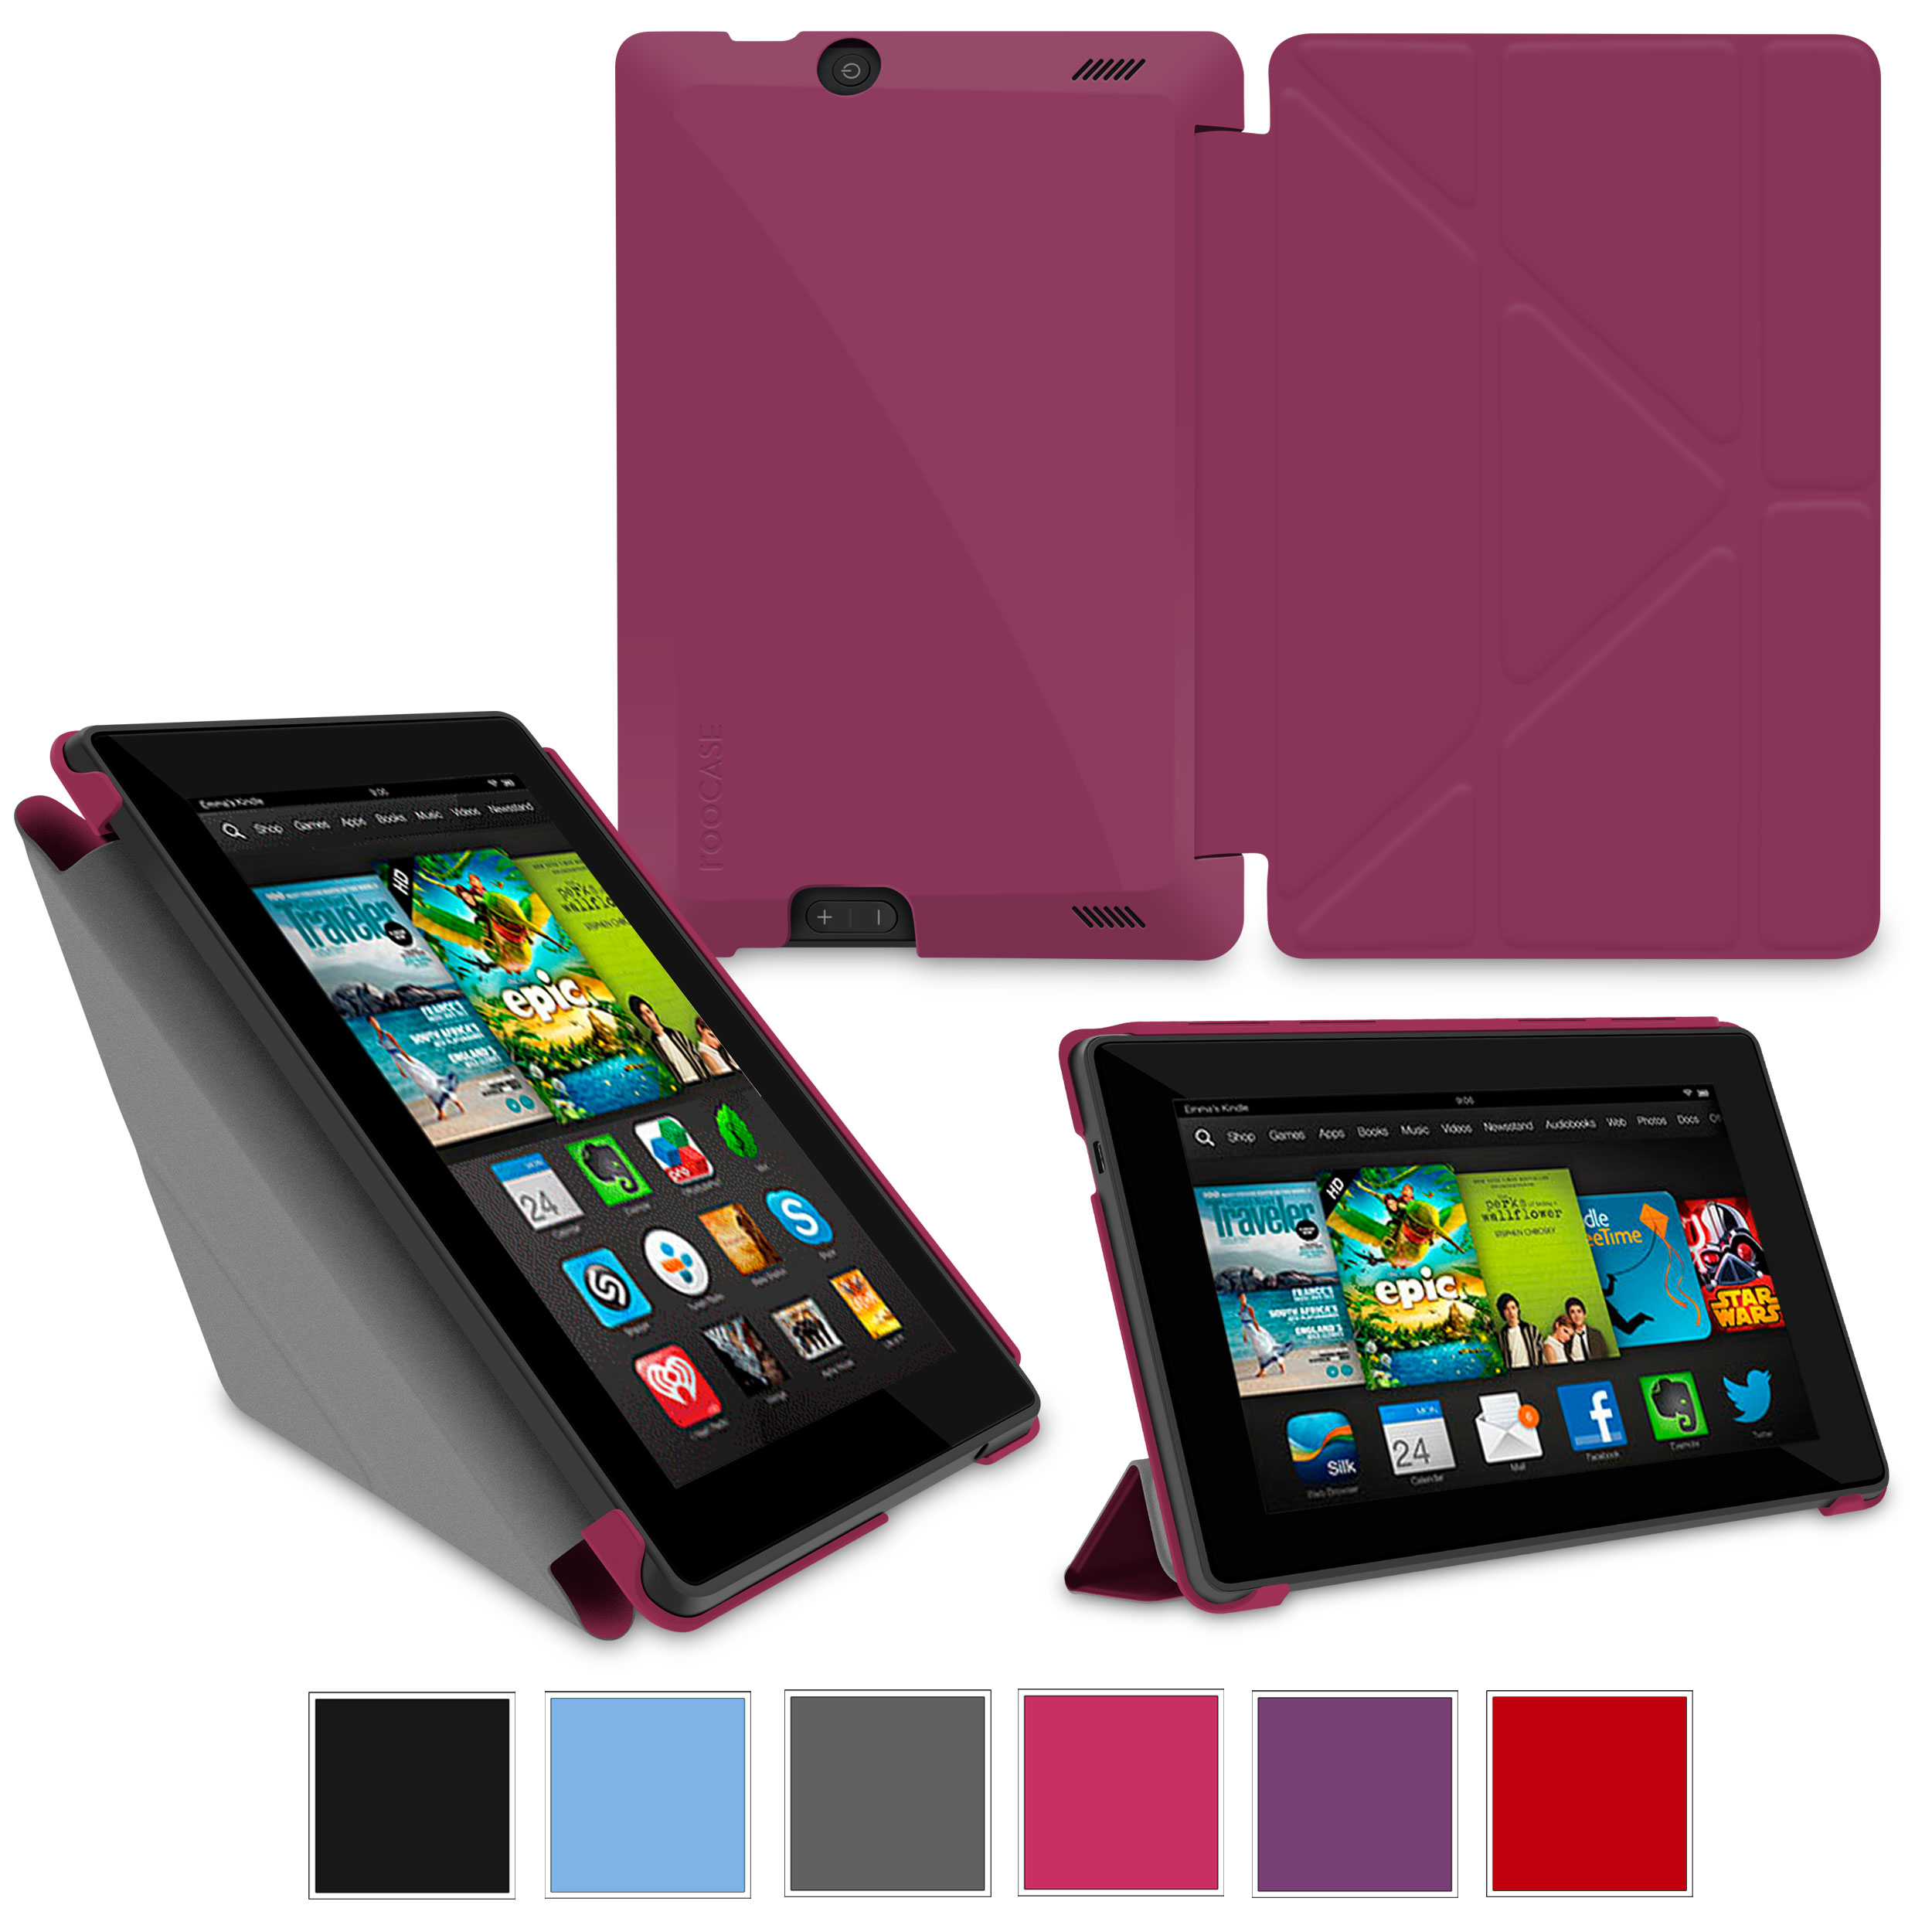 "rooCASE Amazon Kindle Fire HD 7 Case - (2013 Previous Generation) Origami Slim Shell 7-Inch 7"" Cover with Landscape, Portrait, Typing Stand - MAGENTA"